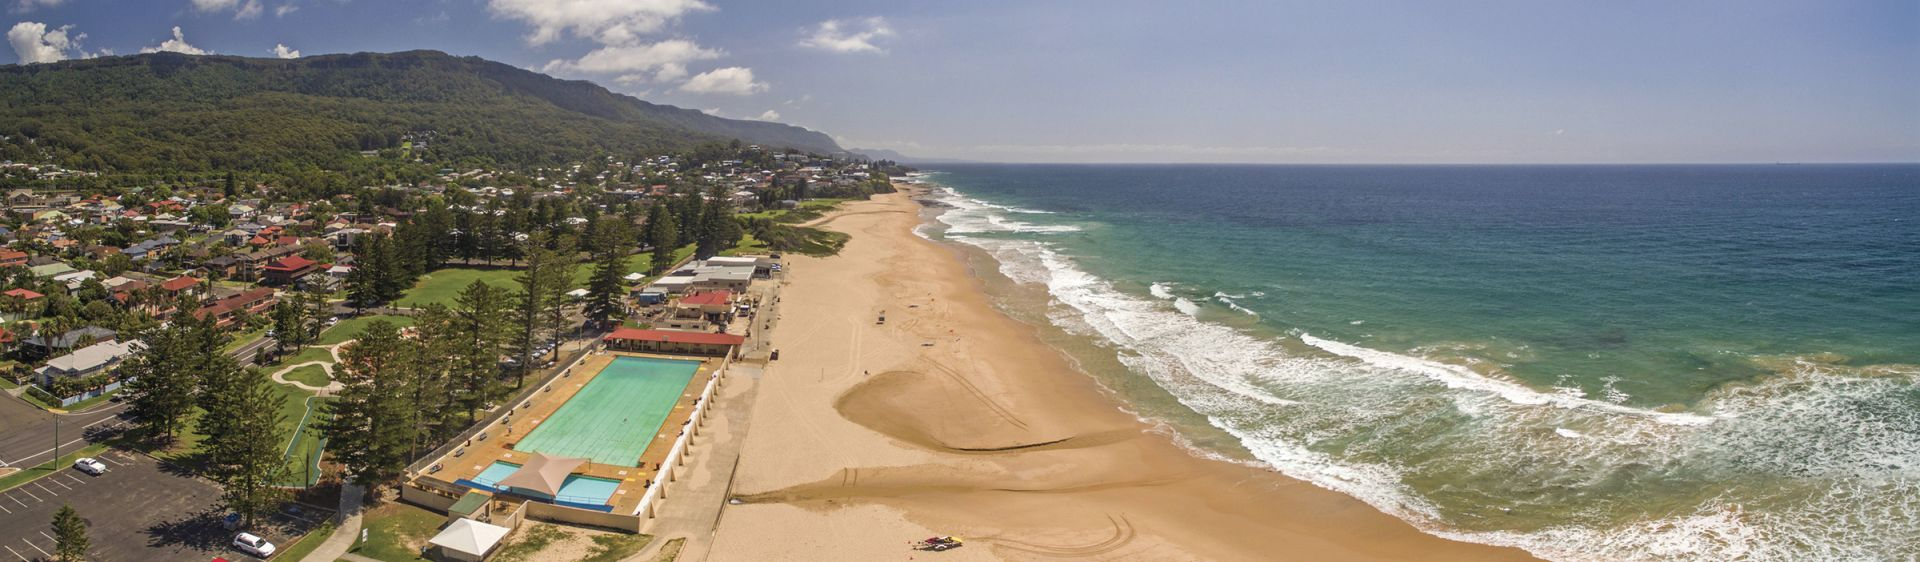 Thirroul Aerial - Northern Wollongong